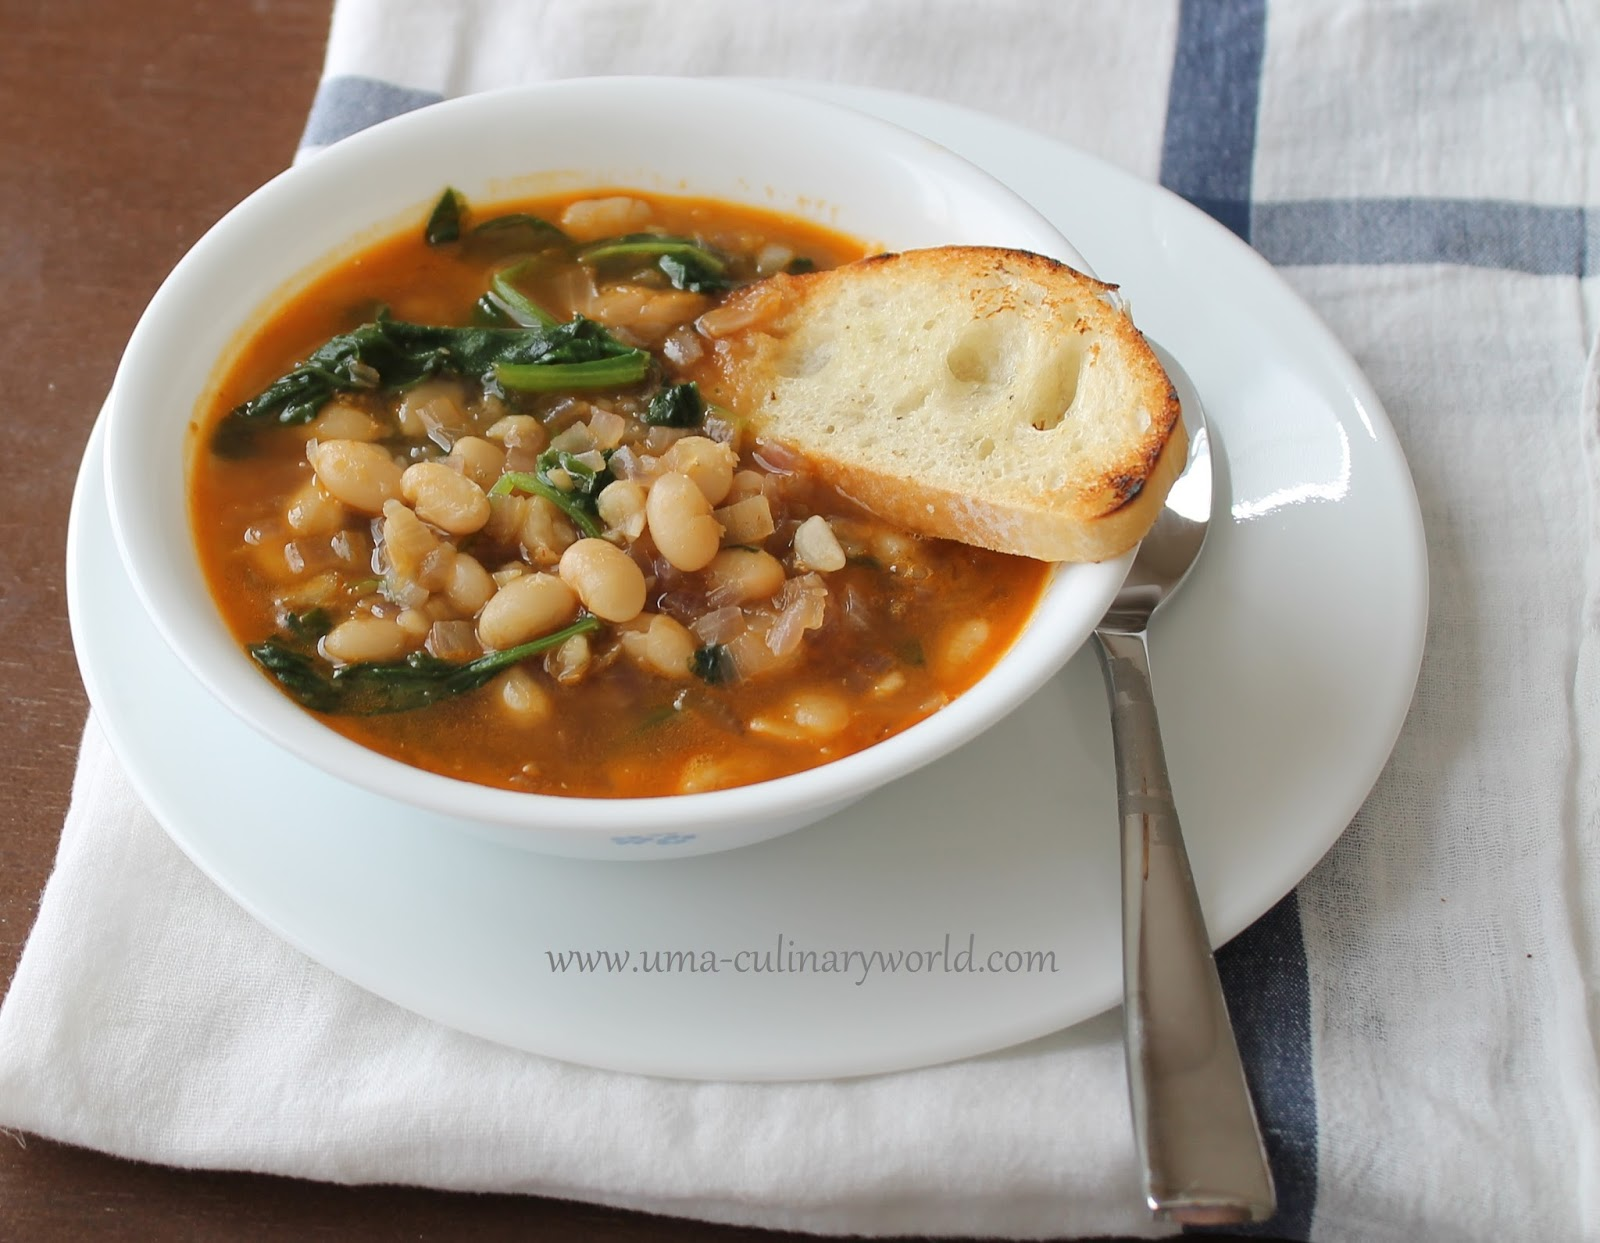 Uma's Culinary World: Spinach and White Bean Soup